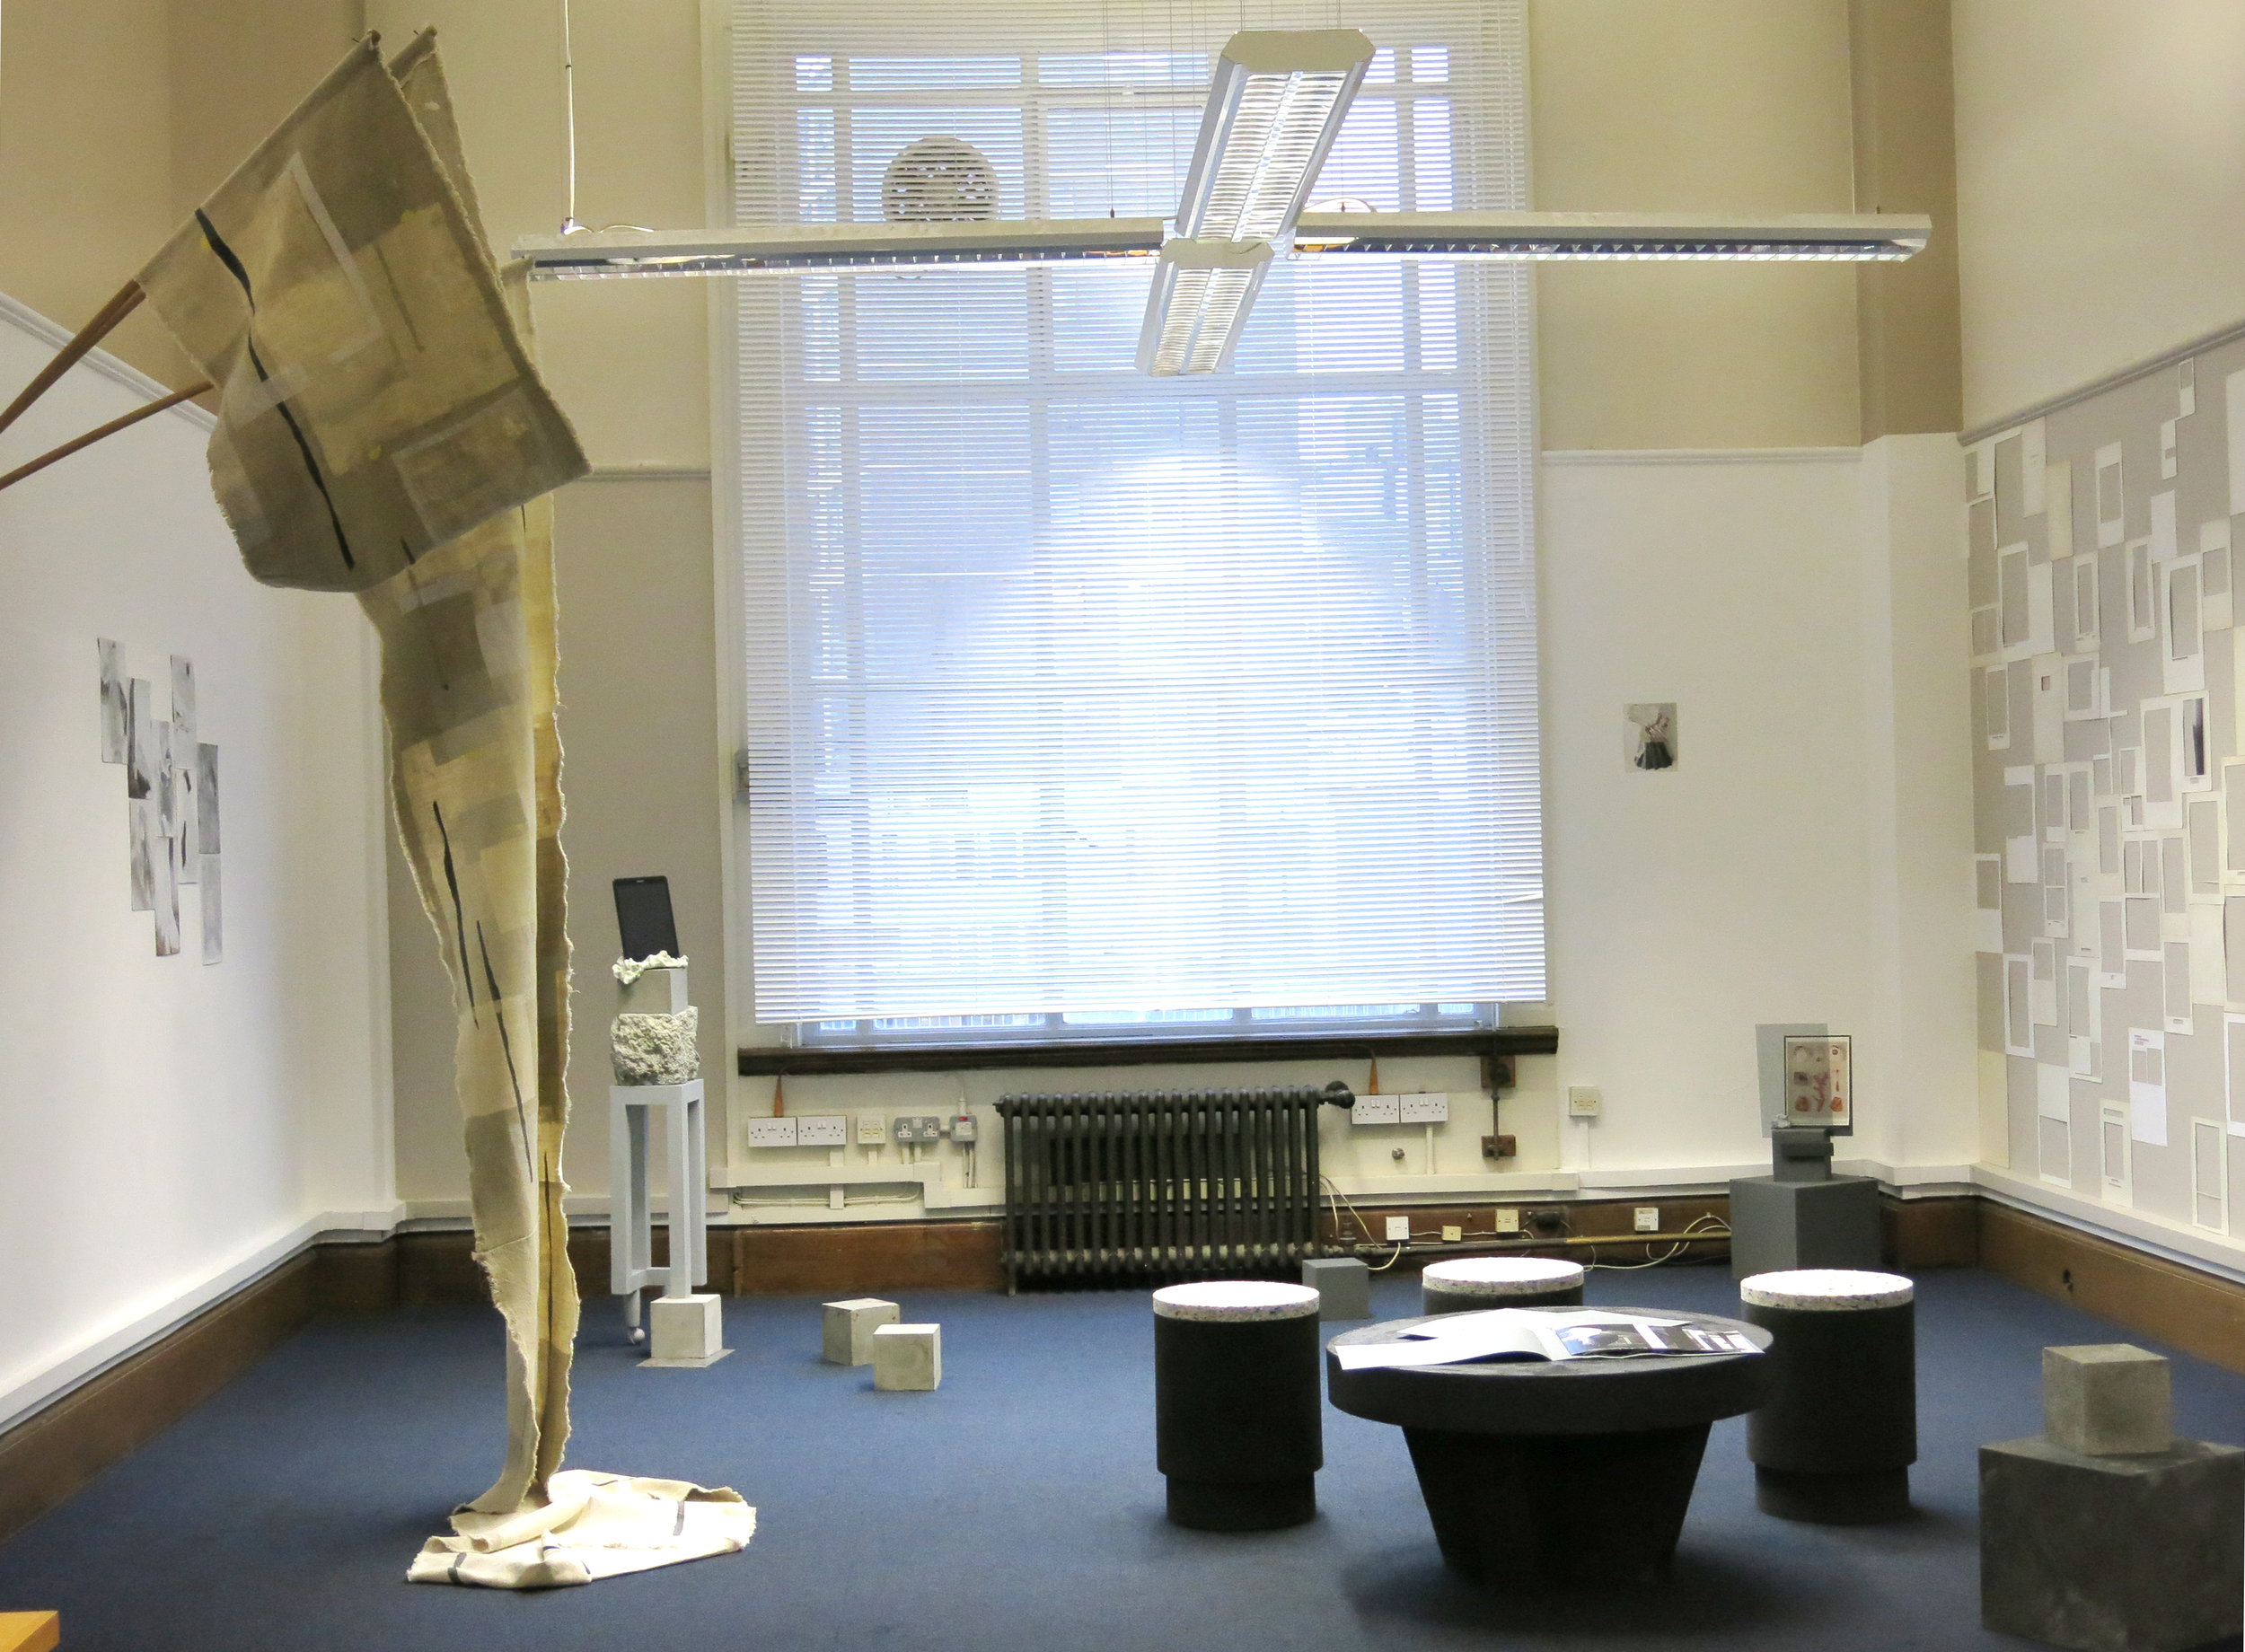 Mimesis Exhibition with Evy Jokhova, Westminster Reference Library, 2015/16